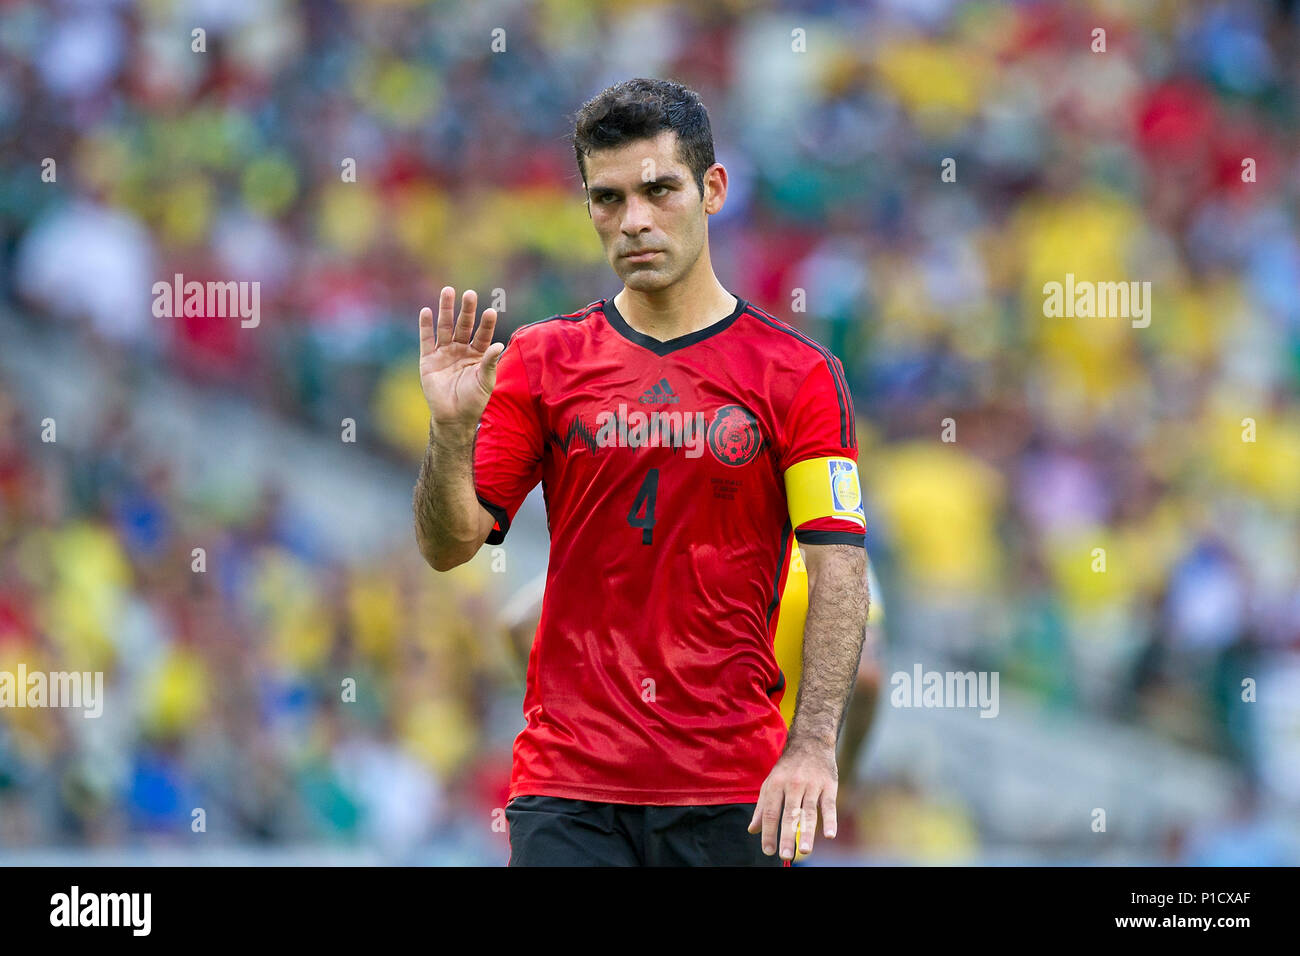 Preview of the first match of the German national football team at the FIFA  World Cup 2018 in Russia  on 17.06.2018 5a5c918c4